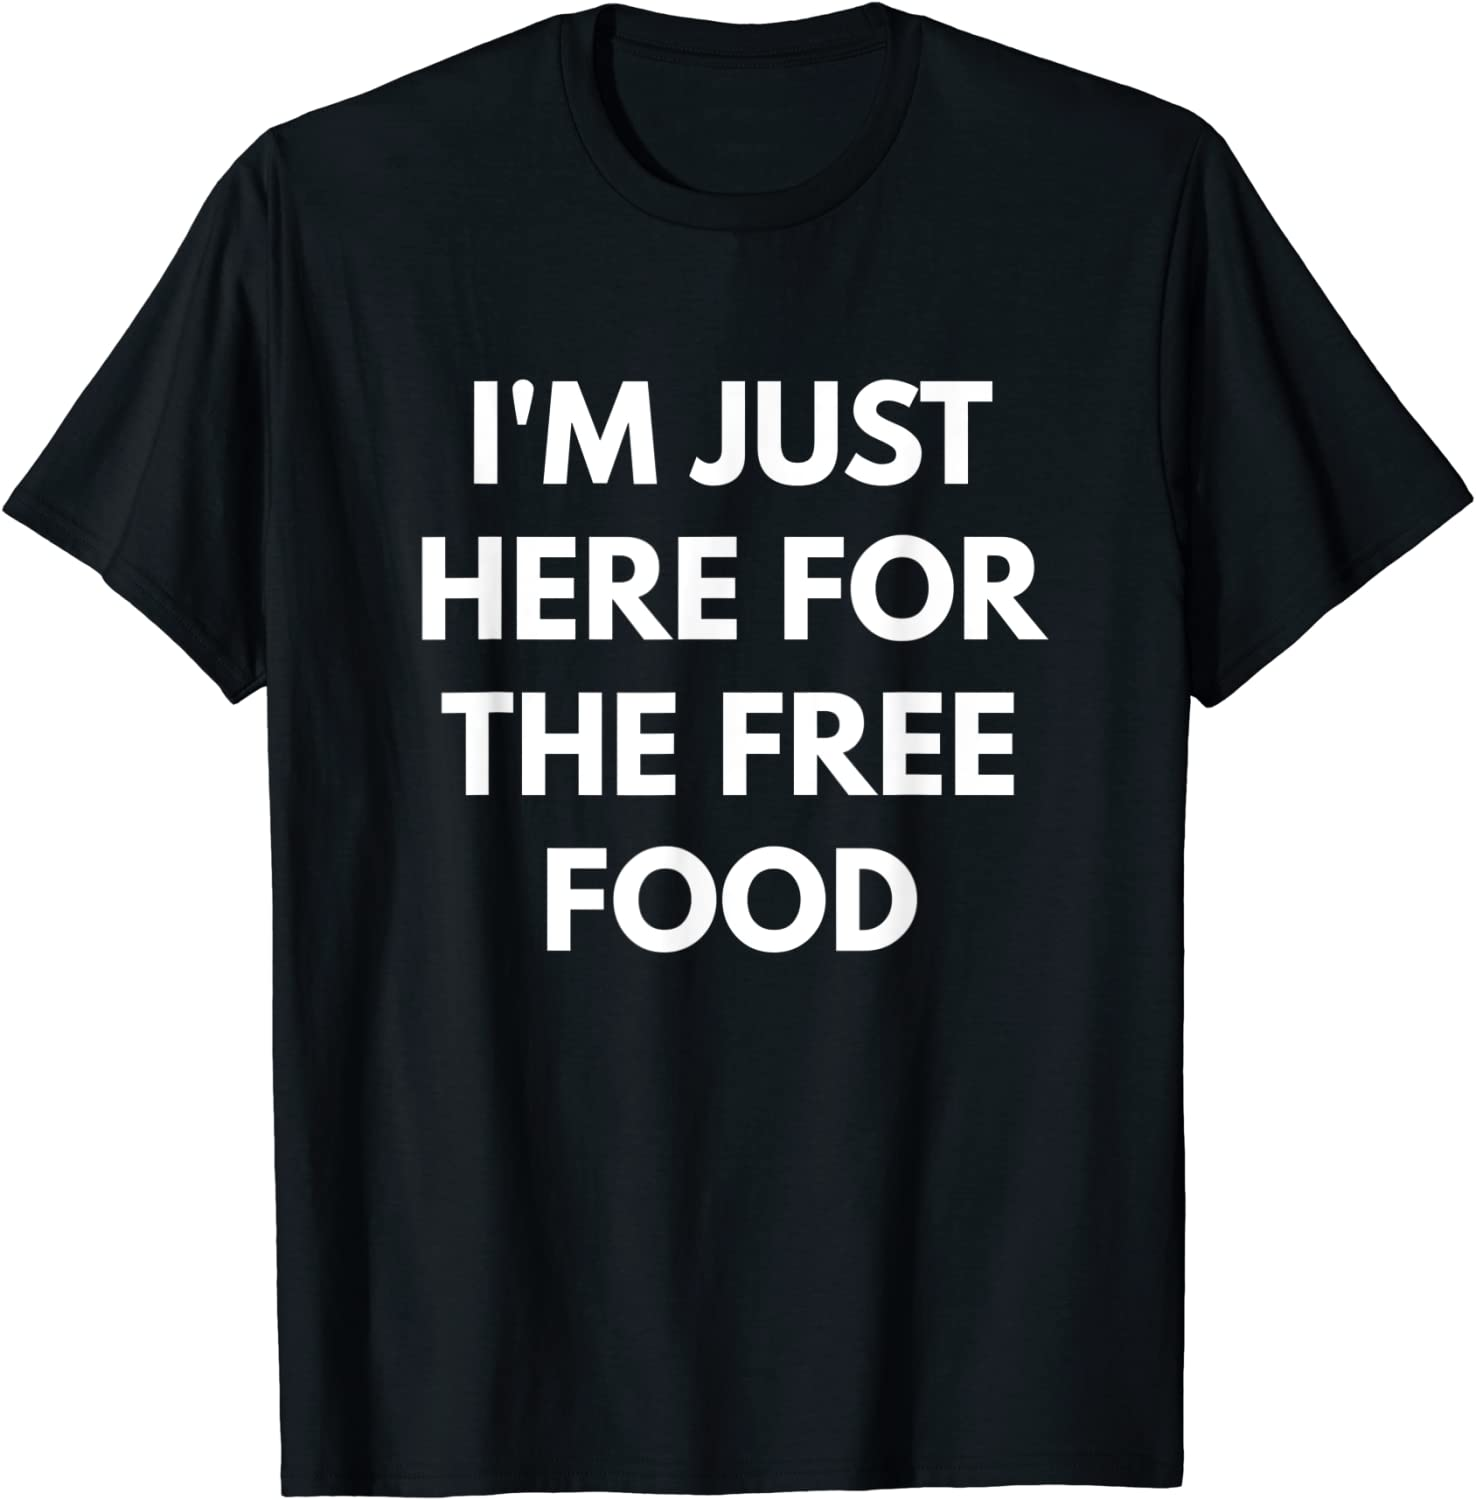 I'm Just Here For The Free Food t-shirt - Funny College Tees